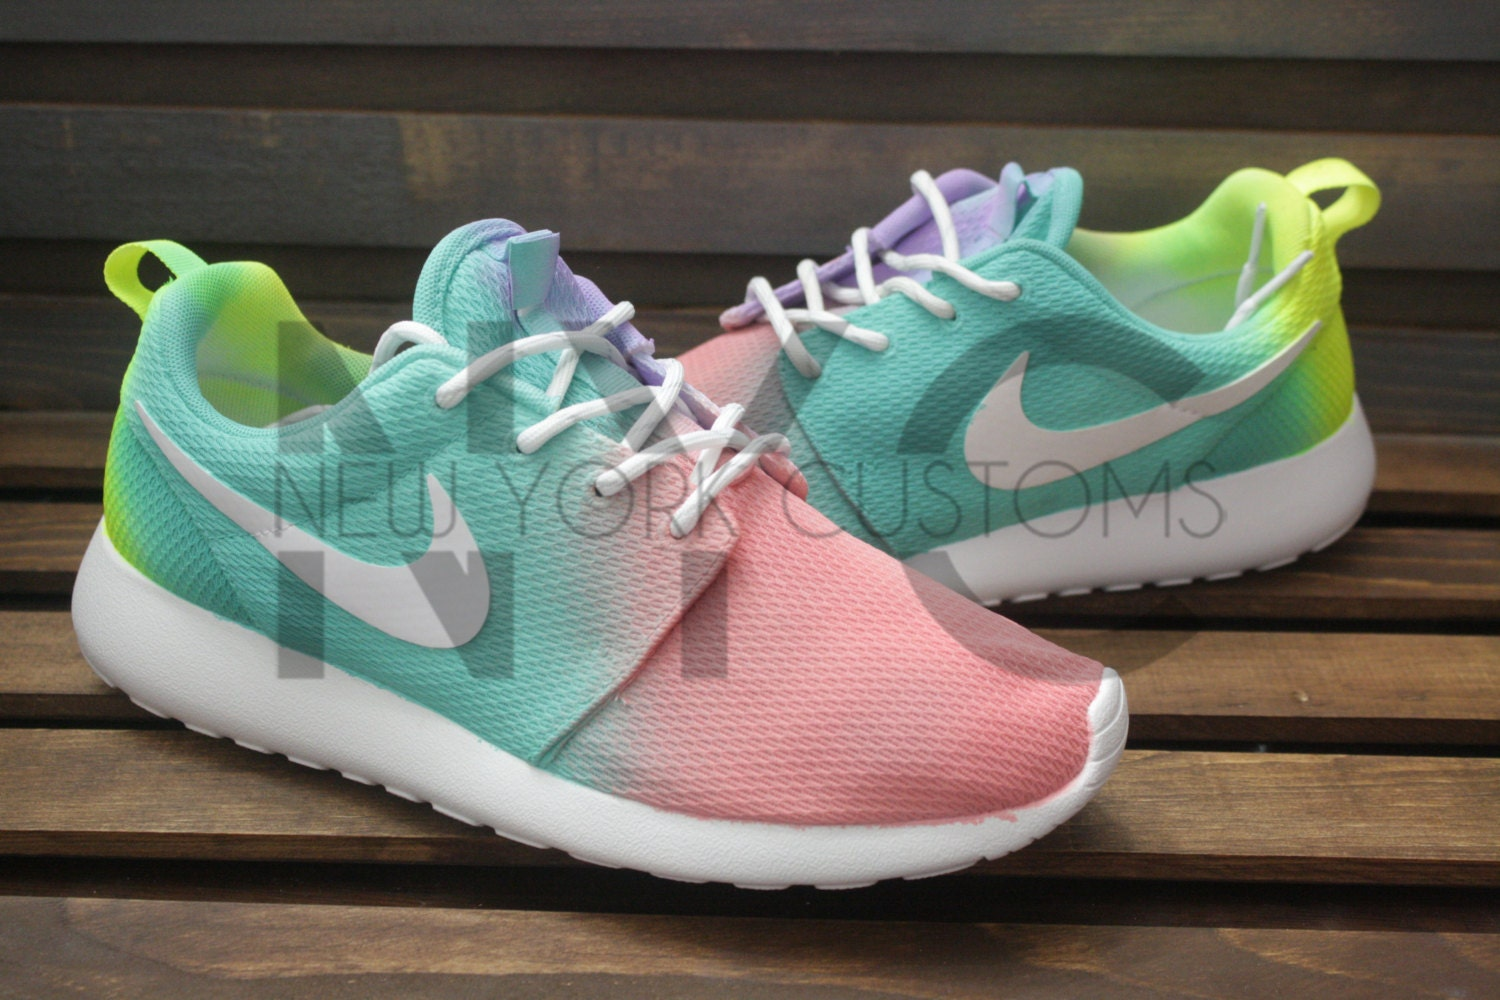 Easter tie dye nike roshe one run triple white pastel custom for Nike tie dye shirt and shorts